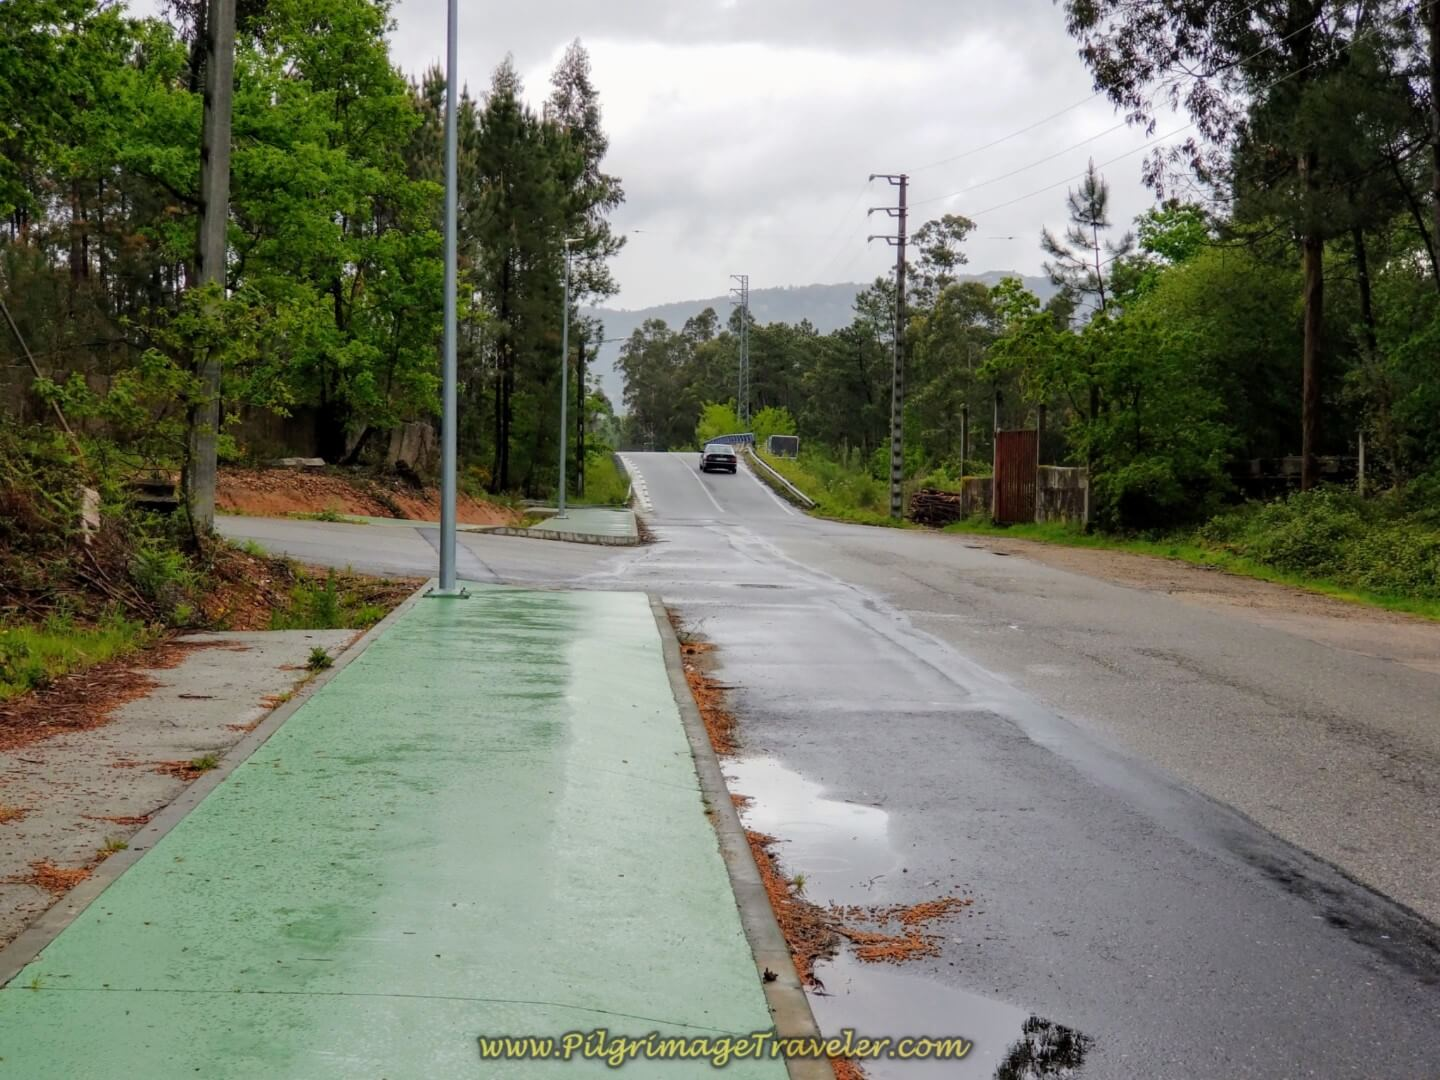 A Pilgrim's Green Beltway on day twenty on the central route of the Portuguese Camino